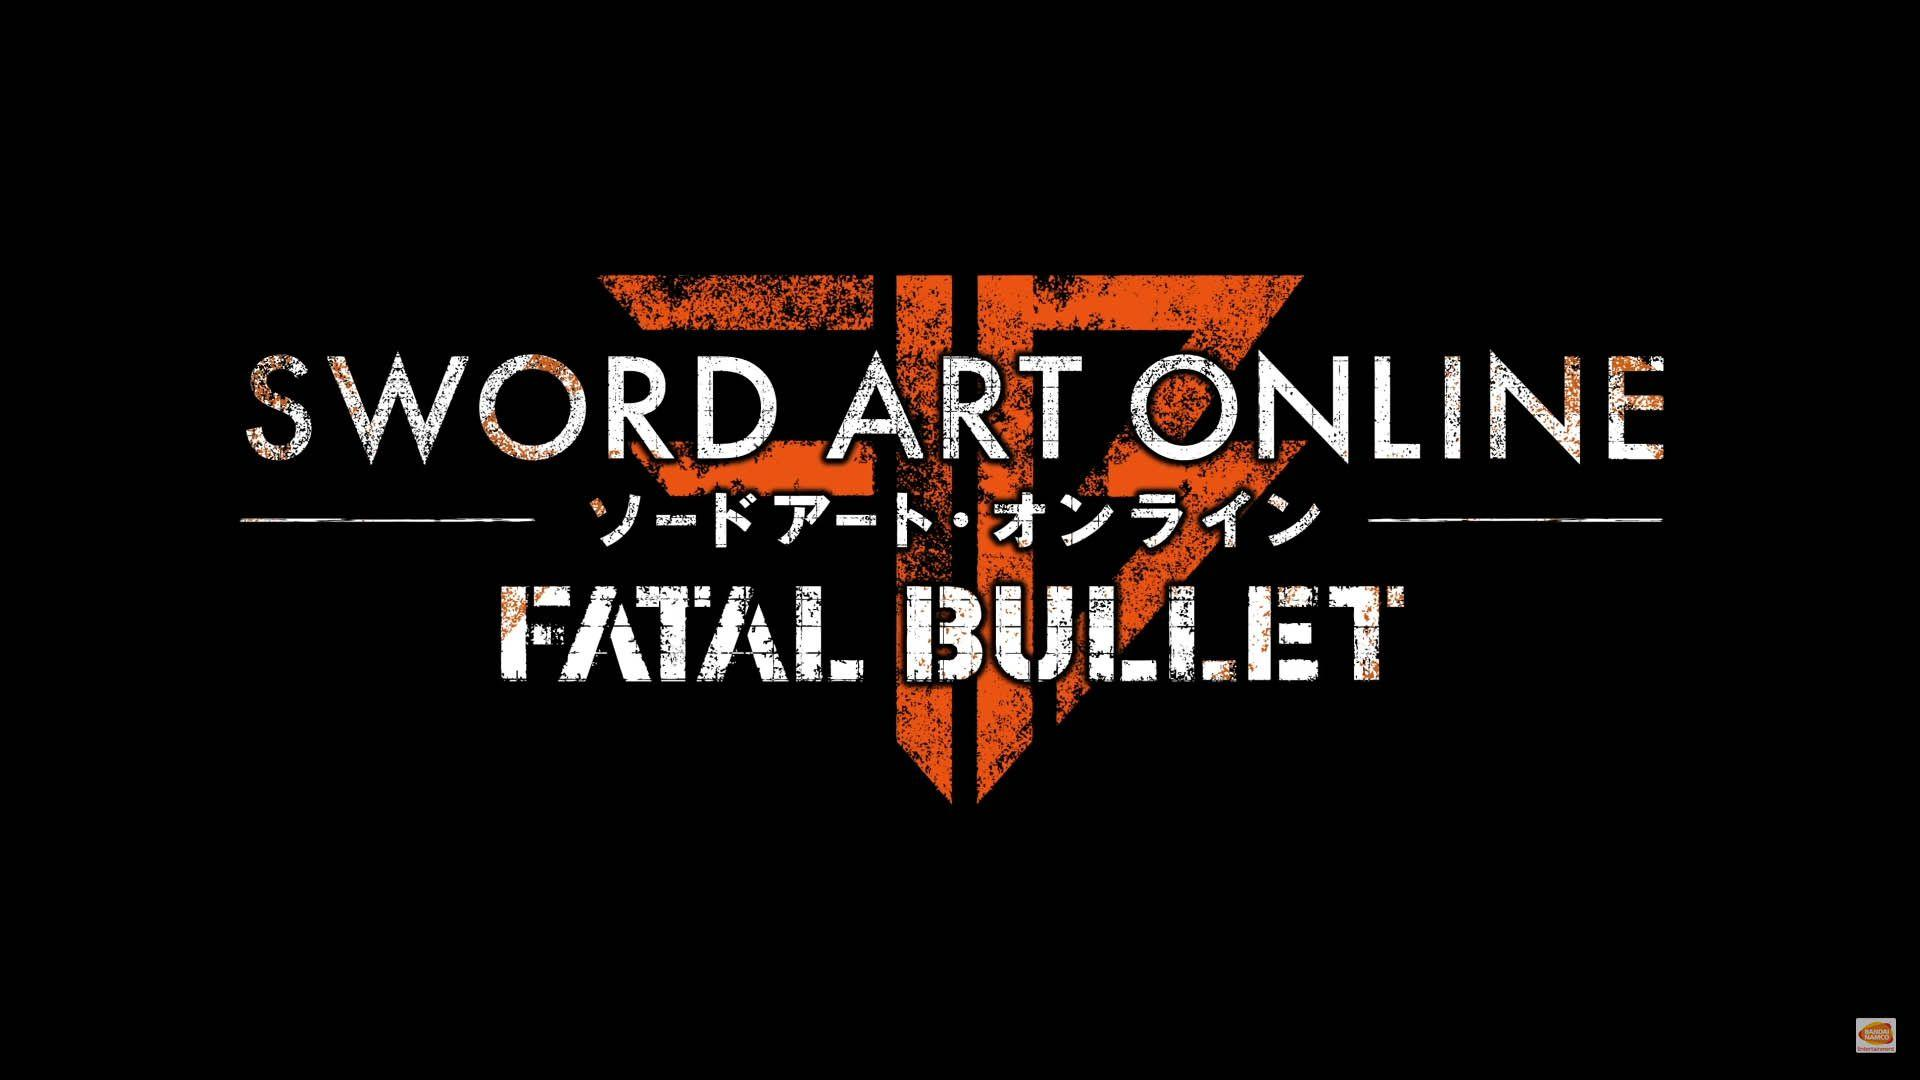 Sword Art Online: Fatal Bullet for PS4, Xbox One and PC Announced